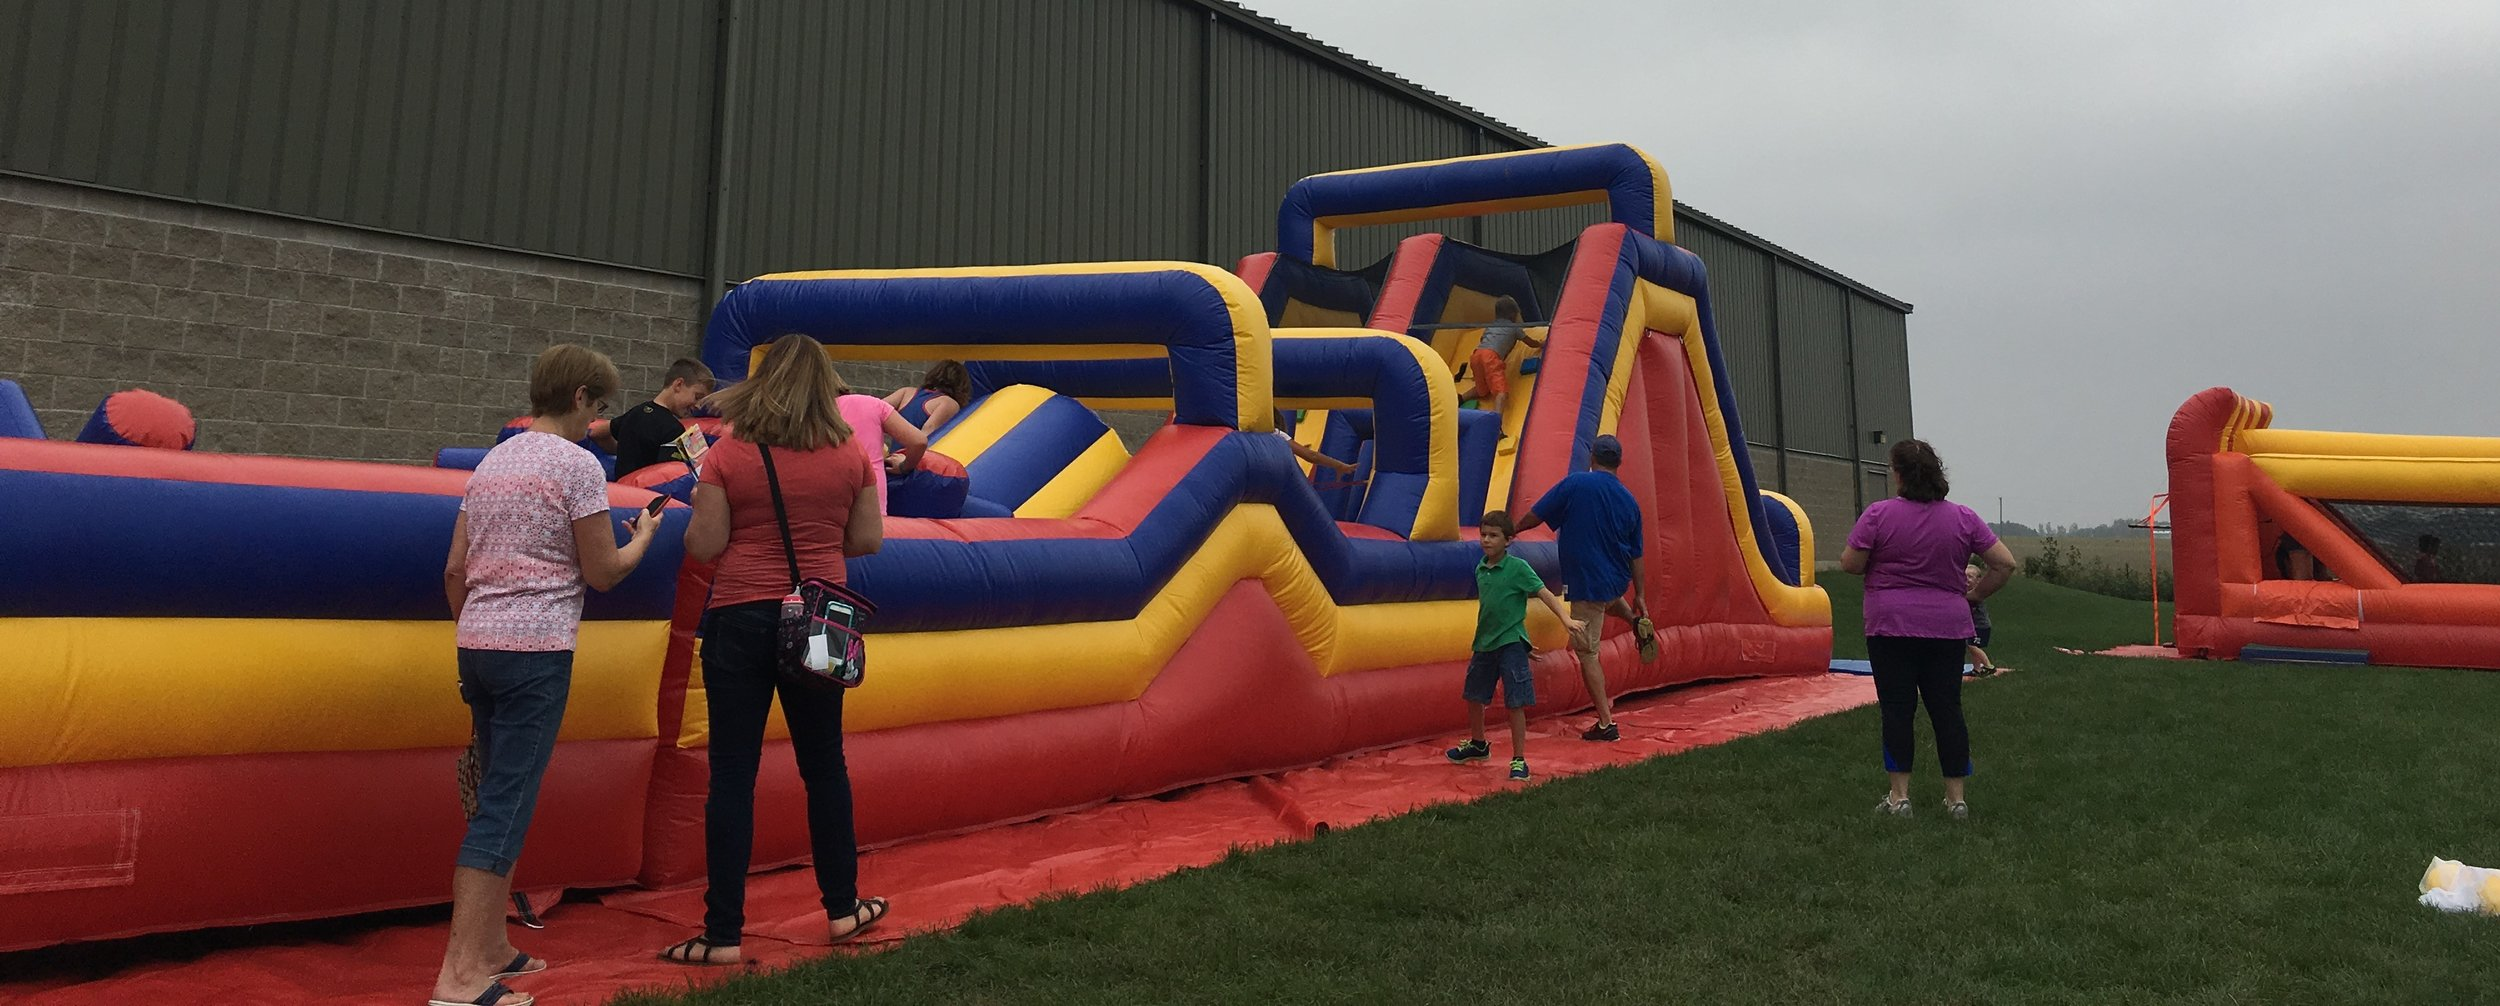 Geneseo outdoor Red obstacle.jpg